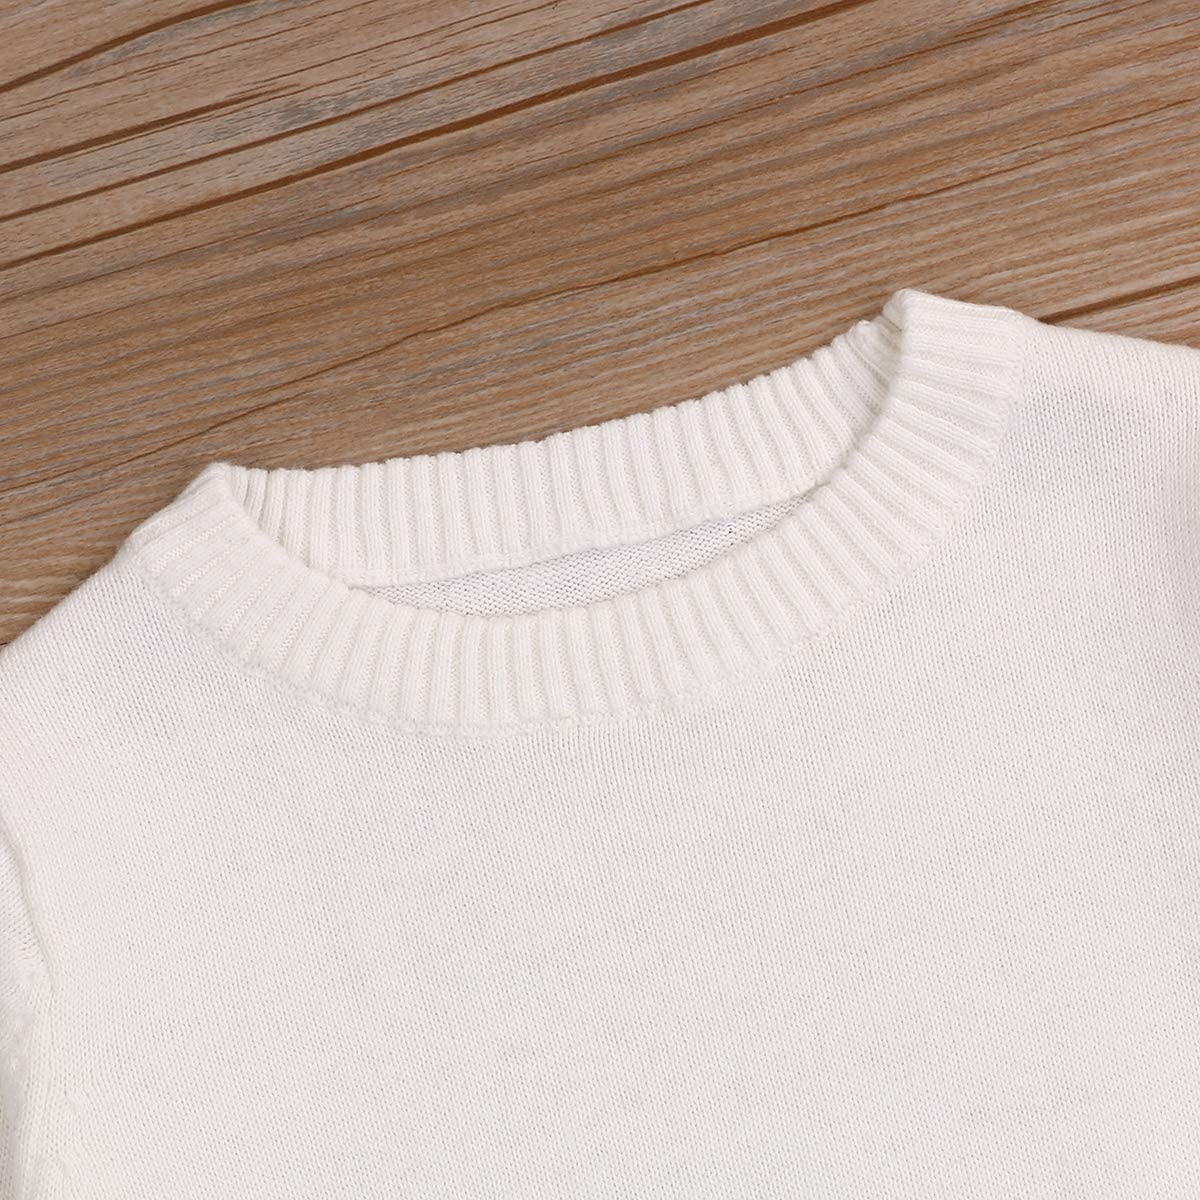 Baby Boys Girl Cotton Pullover Sweater Tops Kids Fall Winter Knit Sweater Solid Color Outfit 1-5T